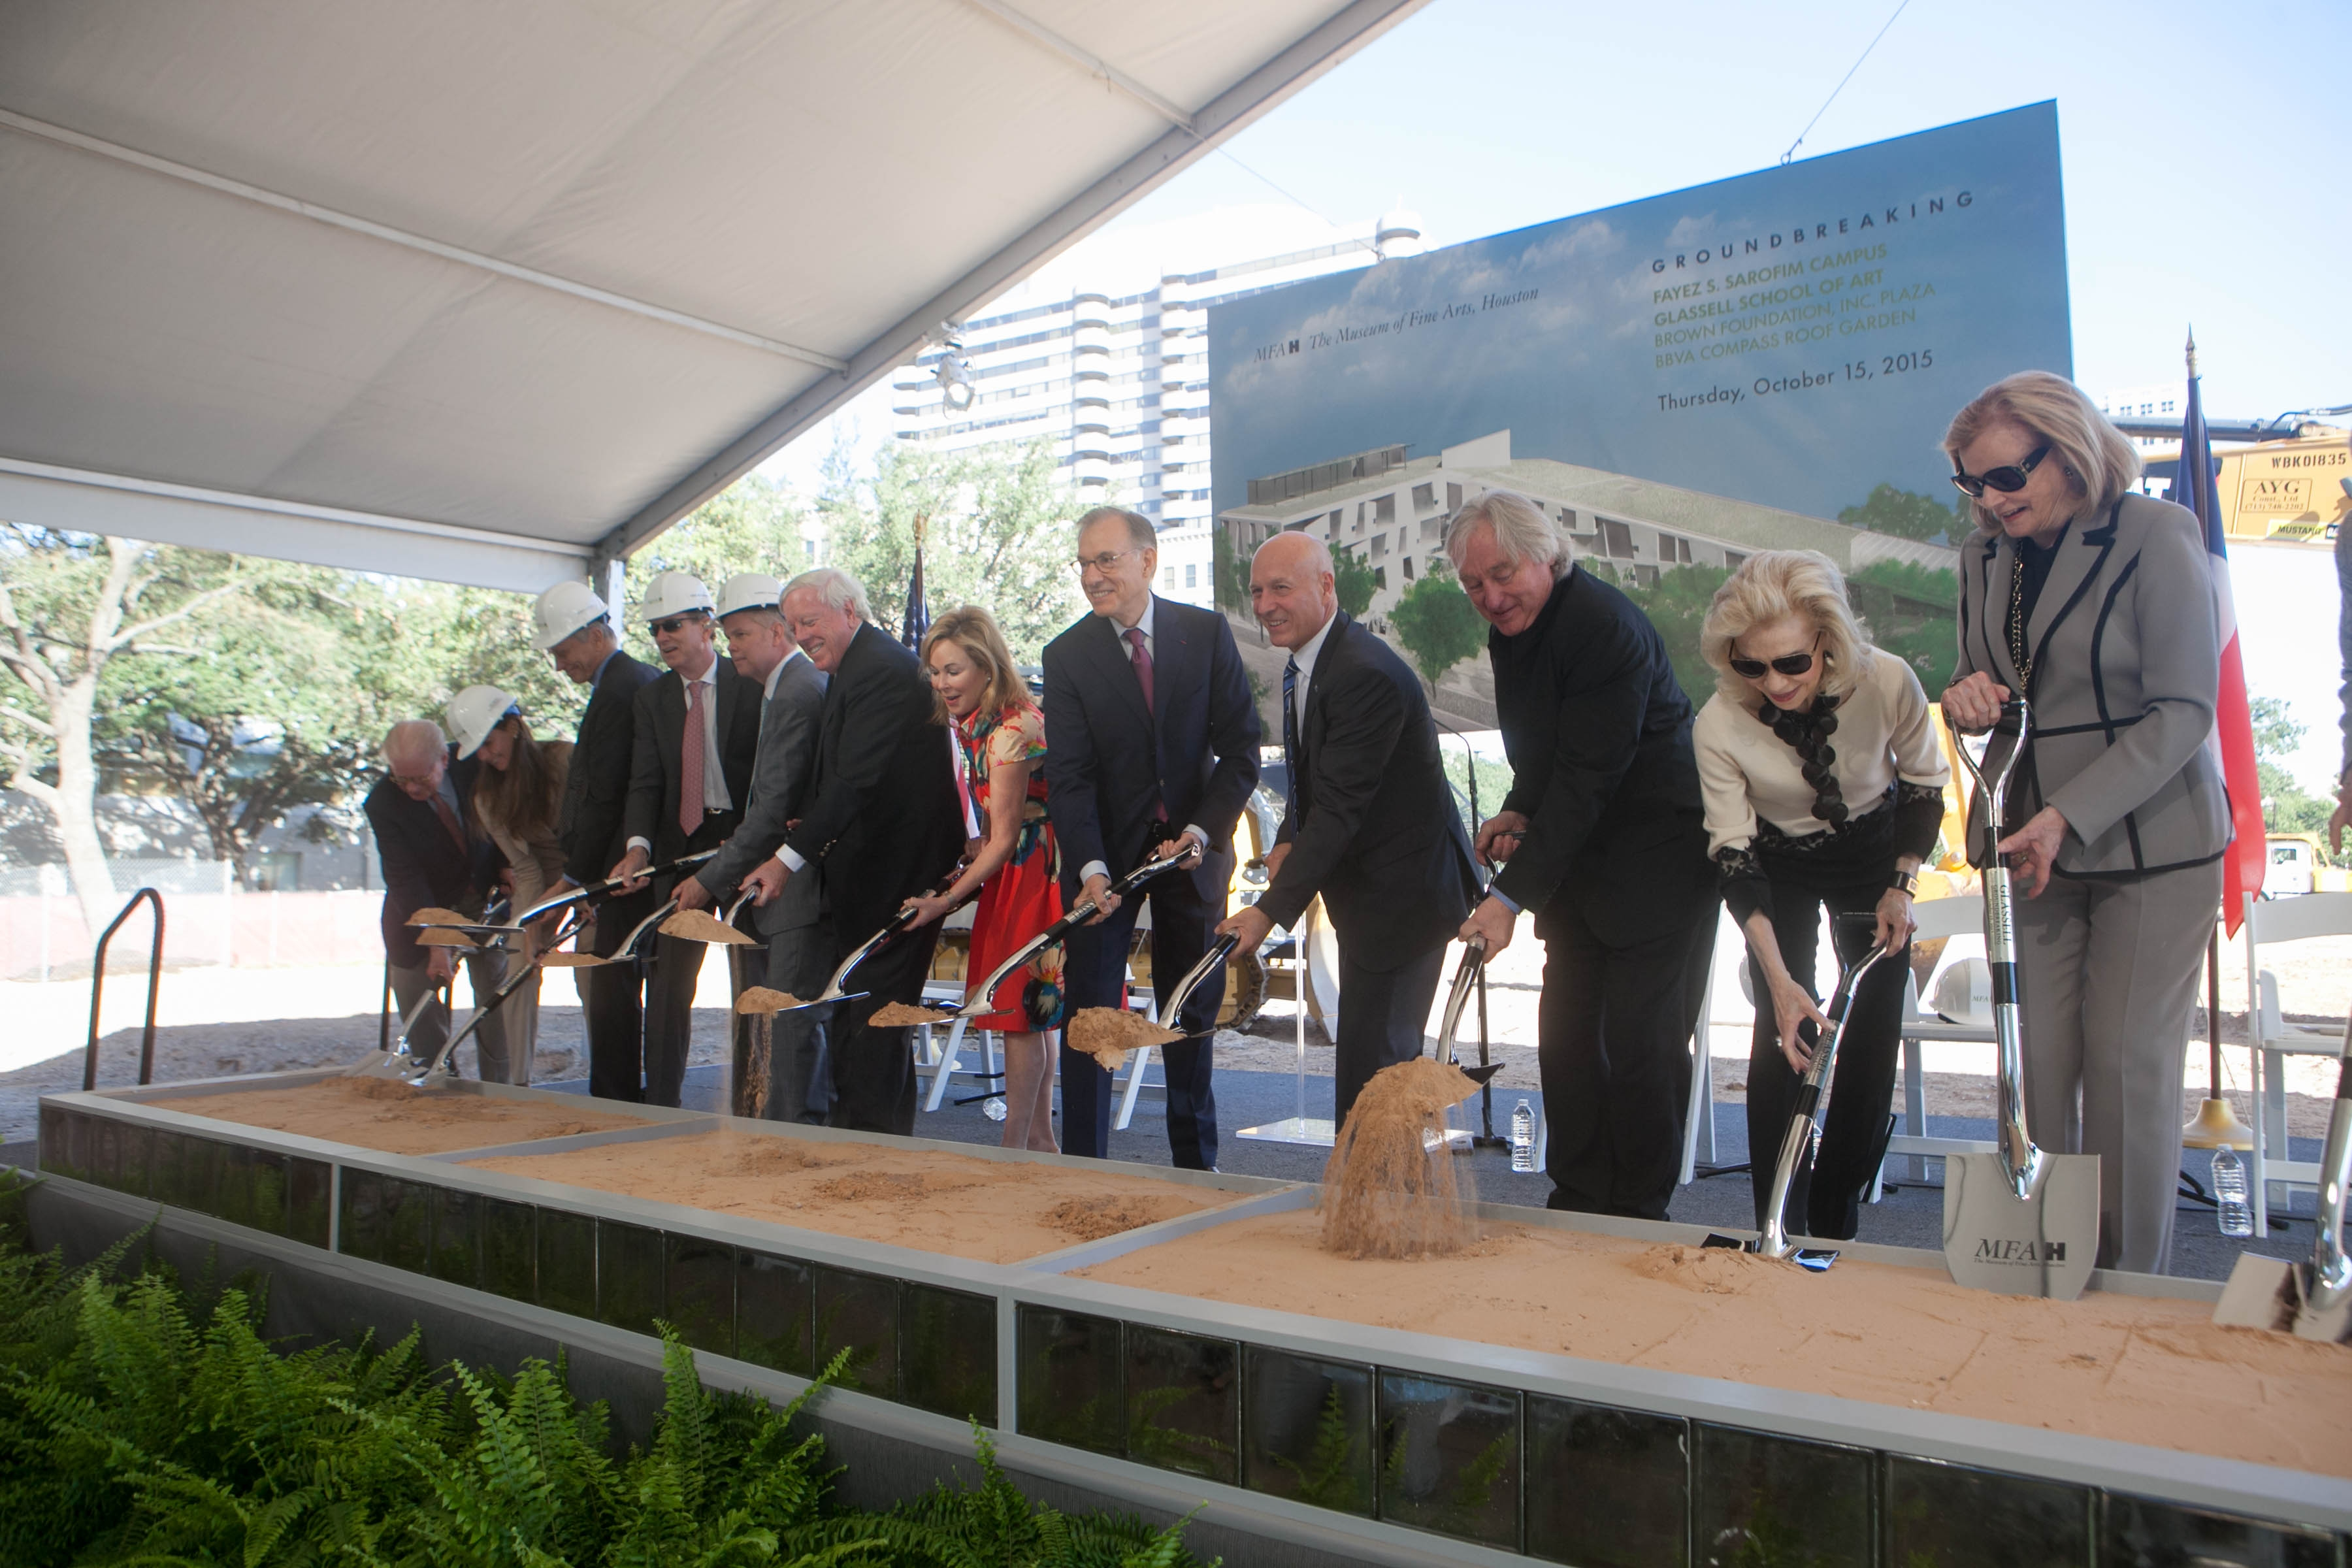 mfah breaks ground on campus and glassell school kinder foundation